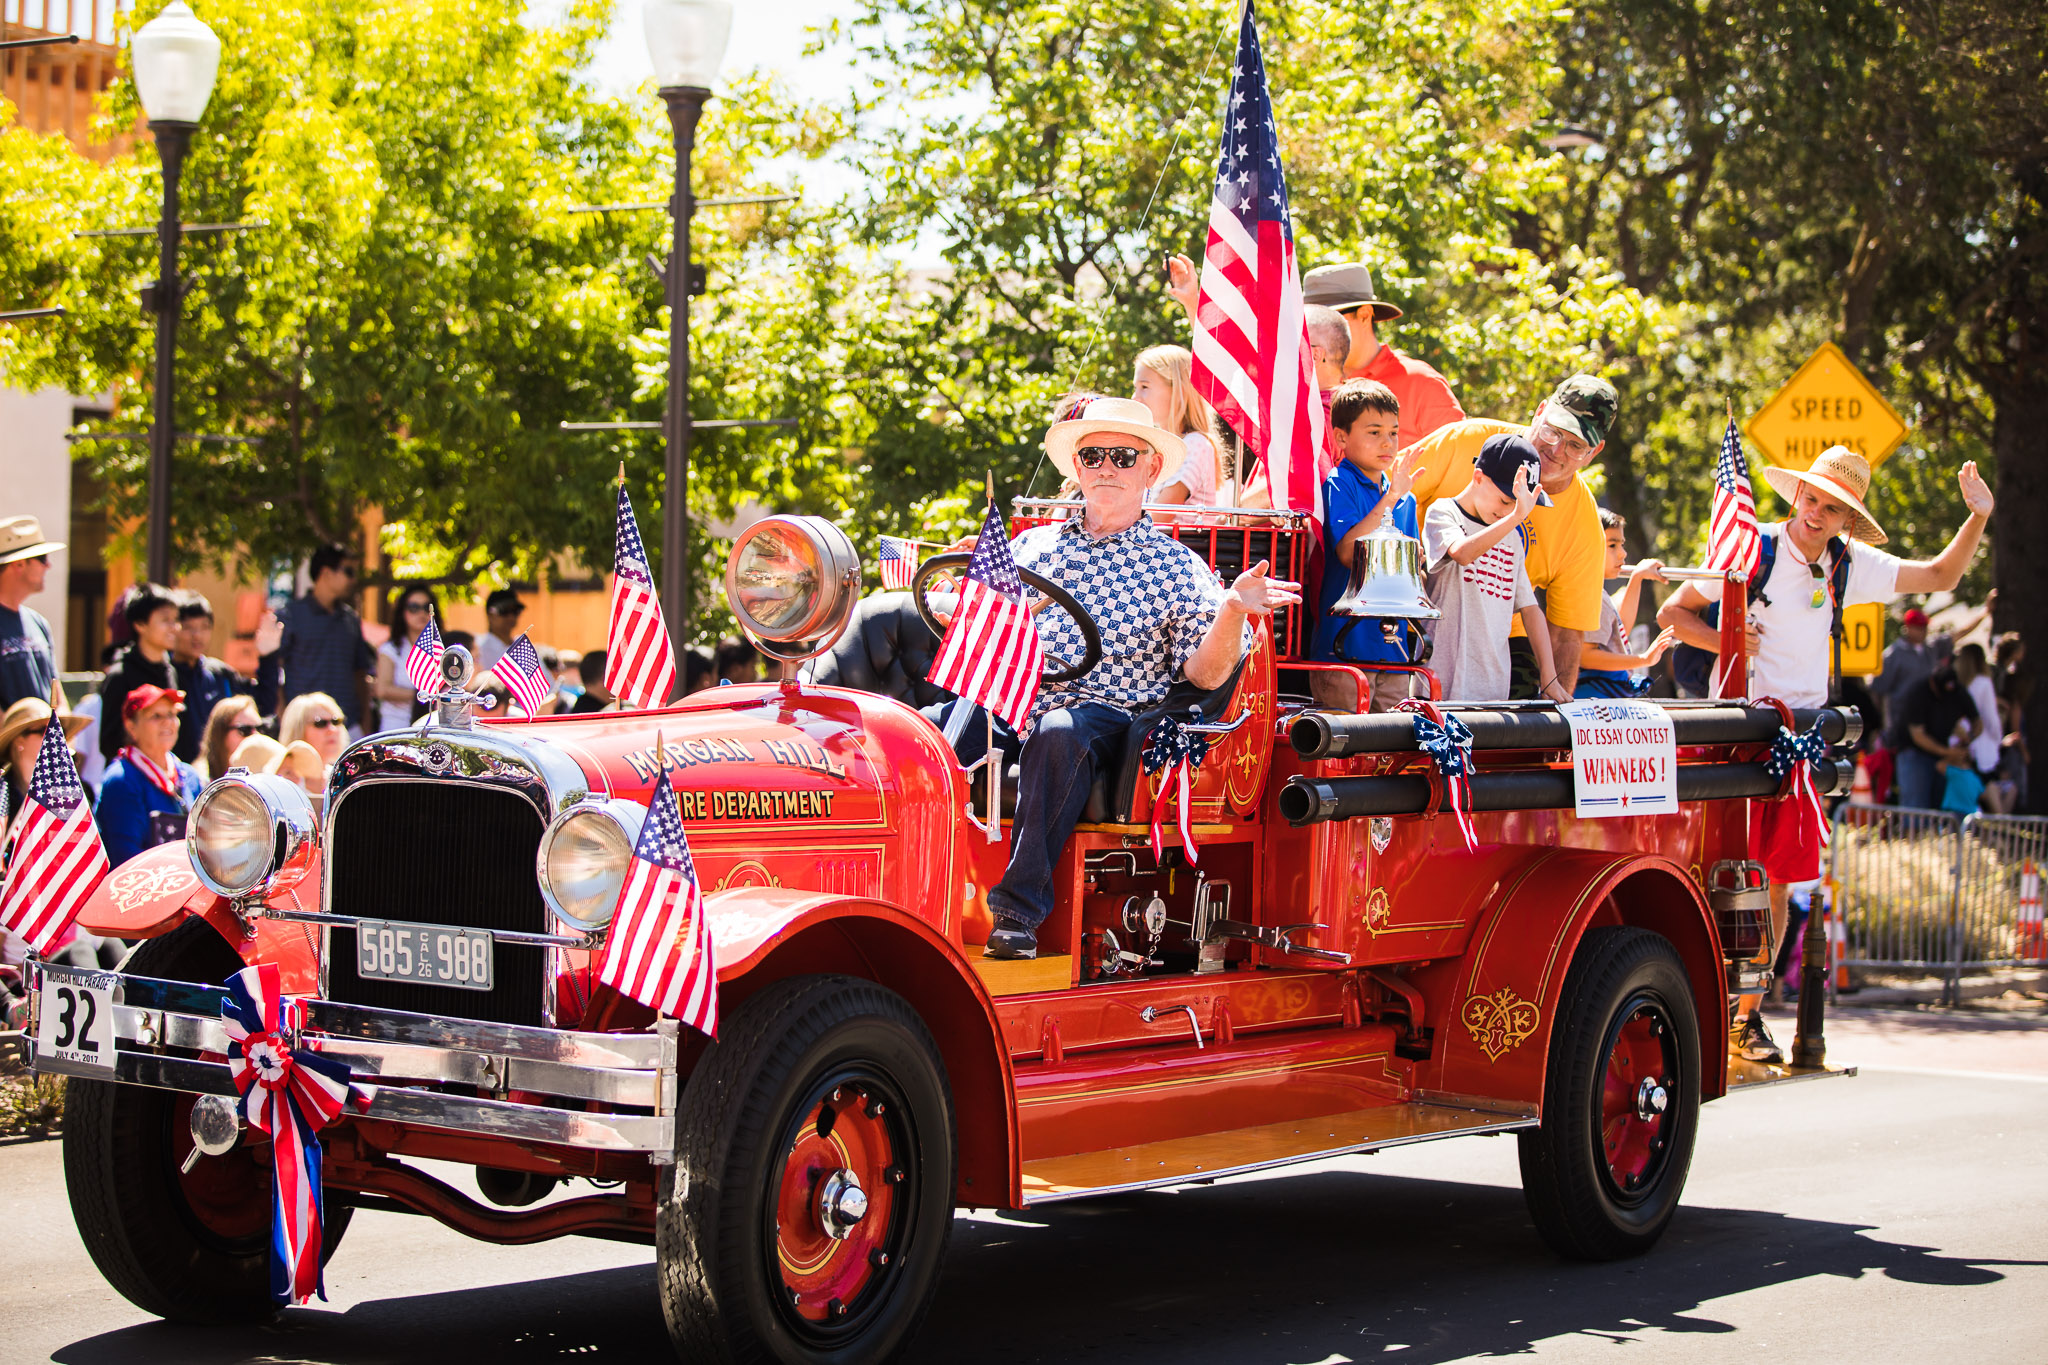 Archer_Inspired_Photography_Morgan_Hill_California_4th_of_july_parade-136.jpg